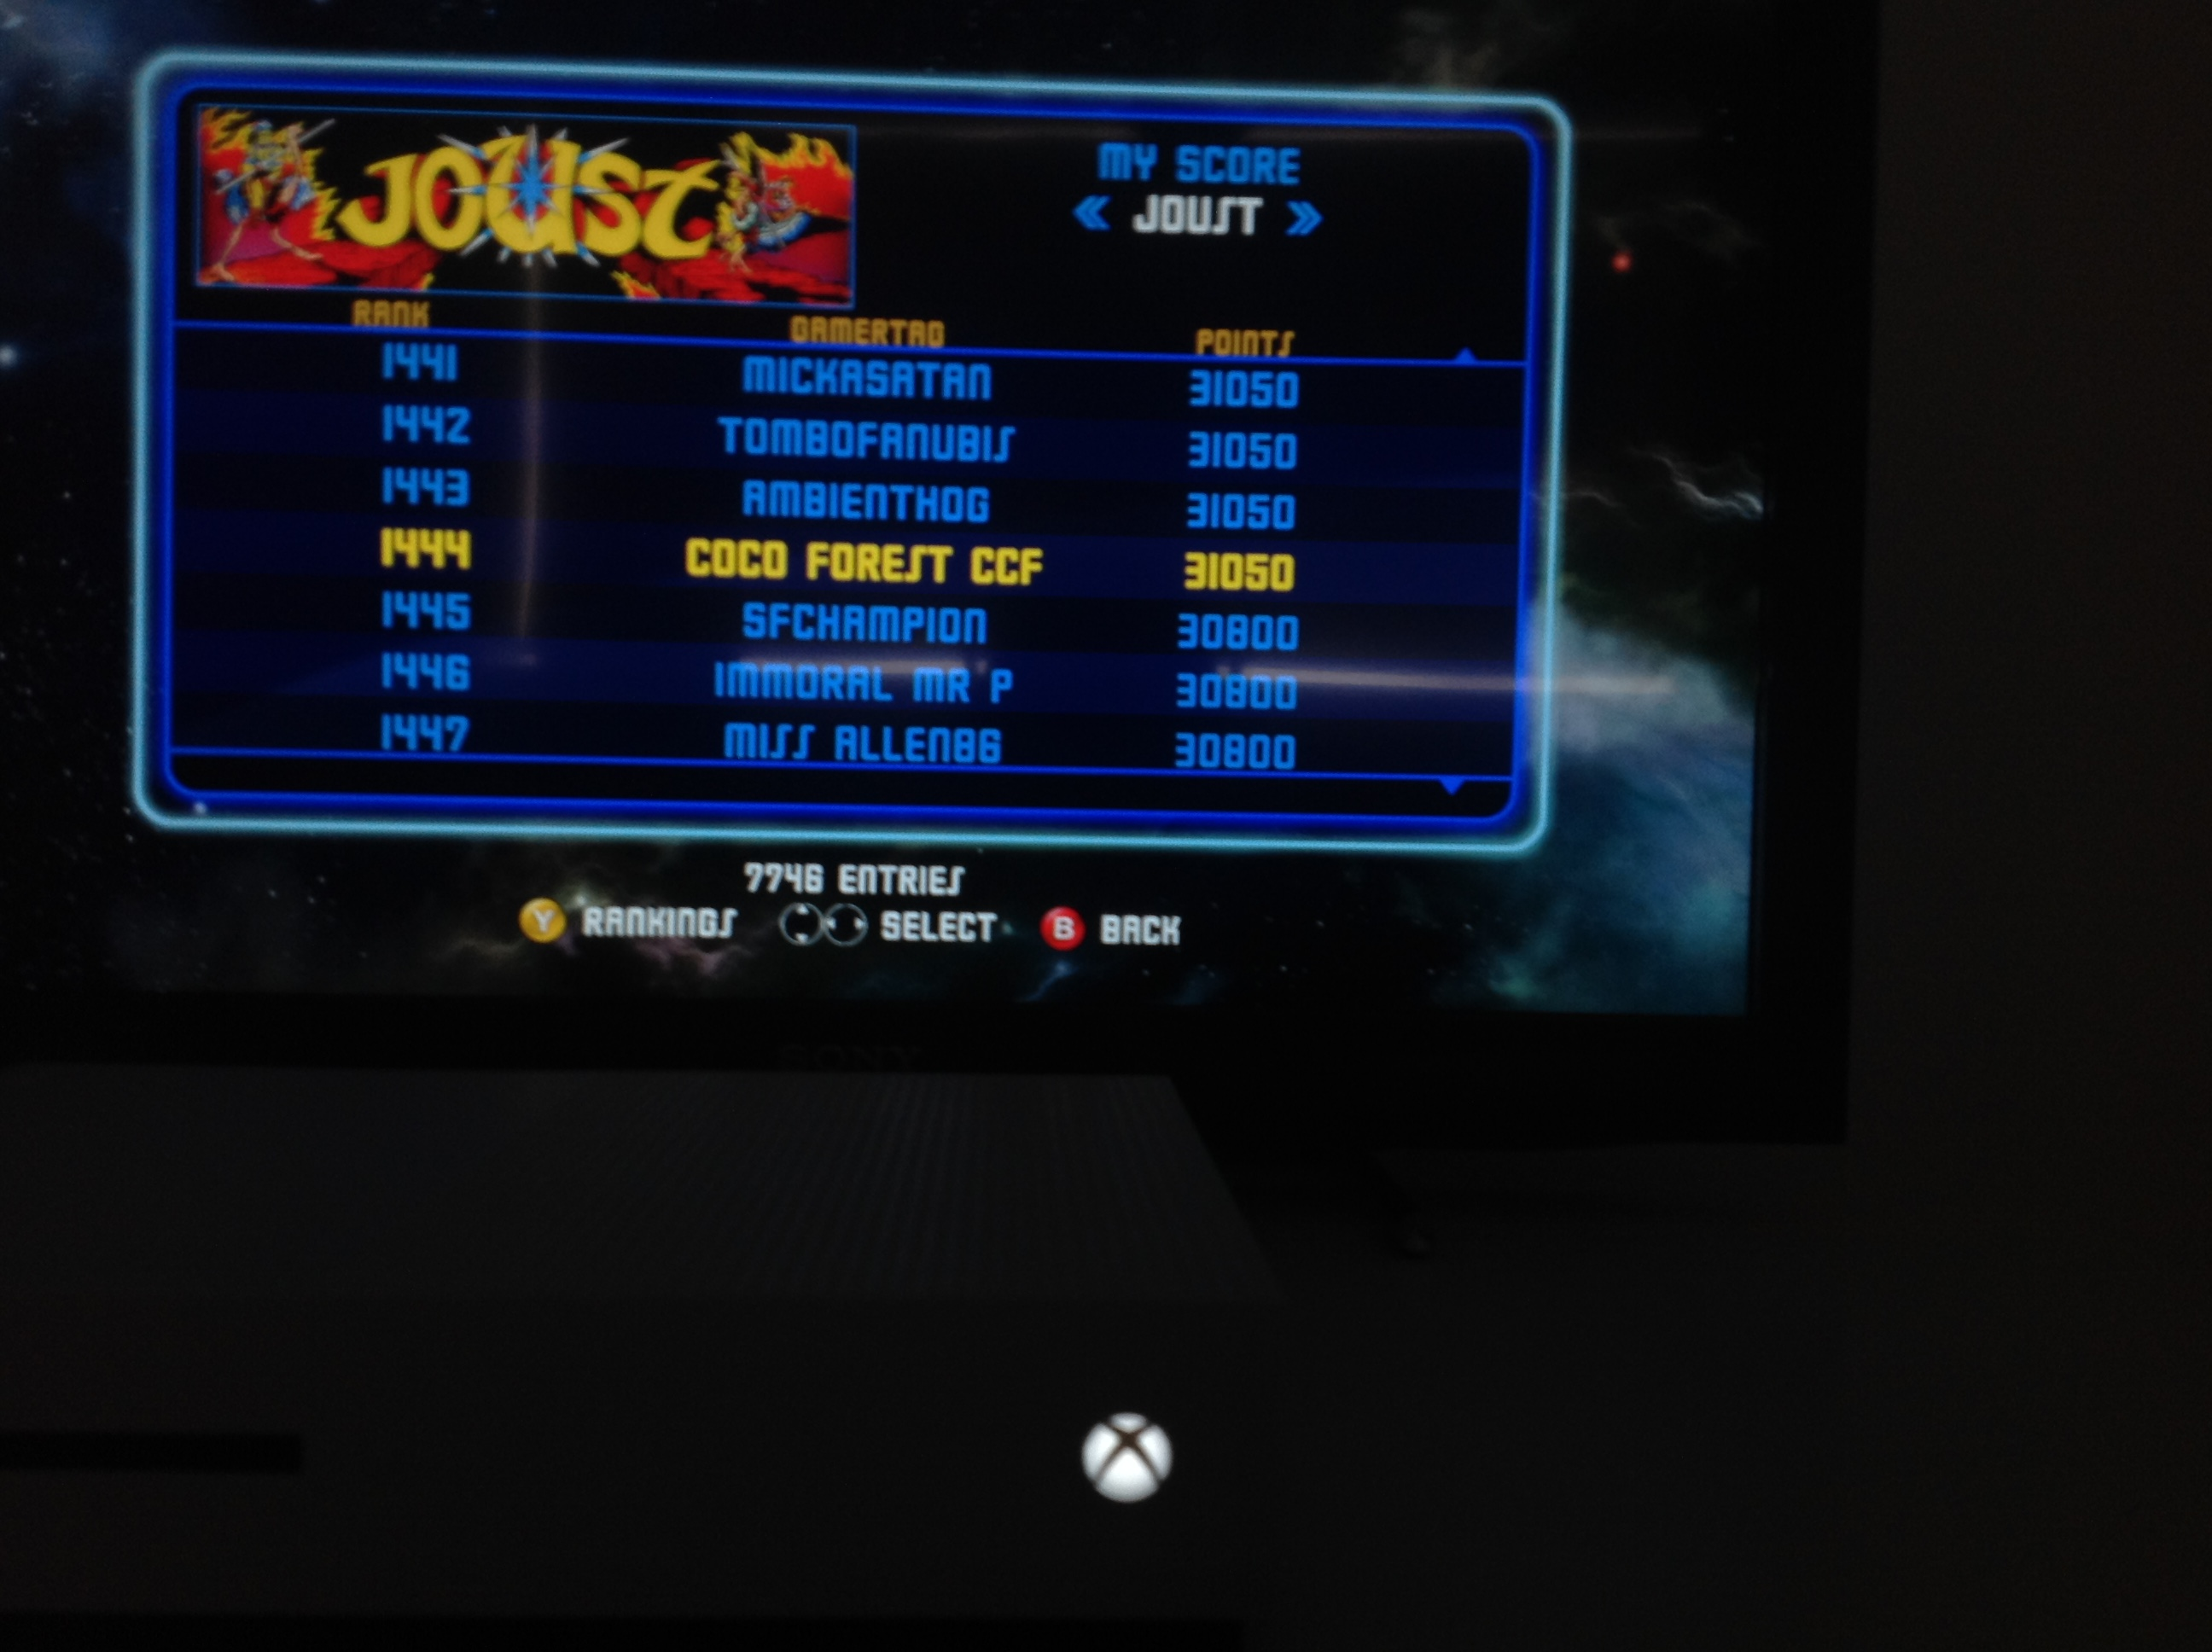 CoCoForest: Midway Arcade Origins: Joust (Xbox 360) 31,050 points on 2019-05-26 01:46:33